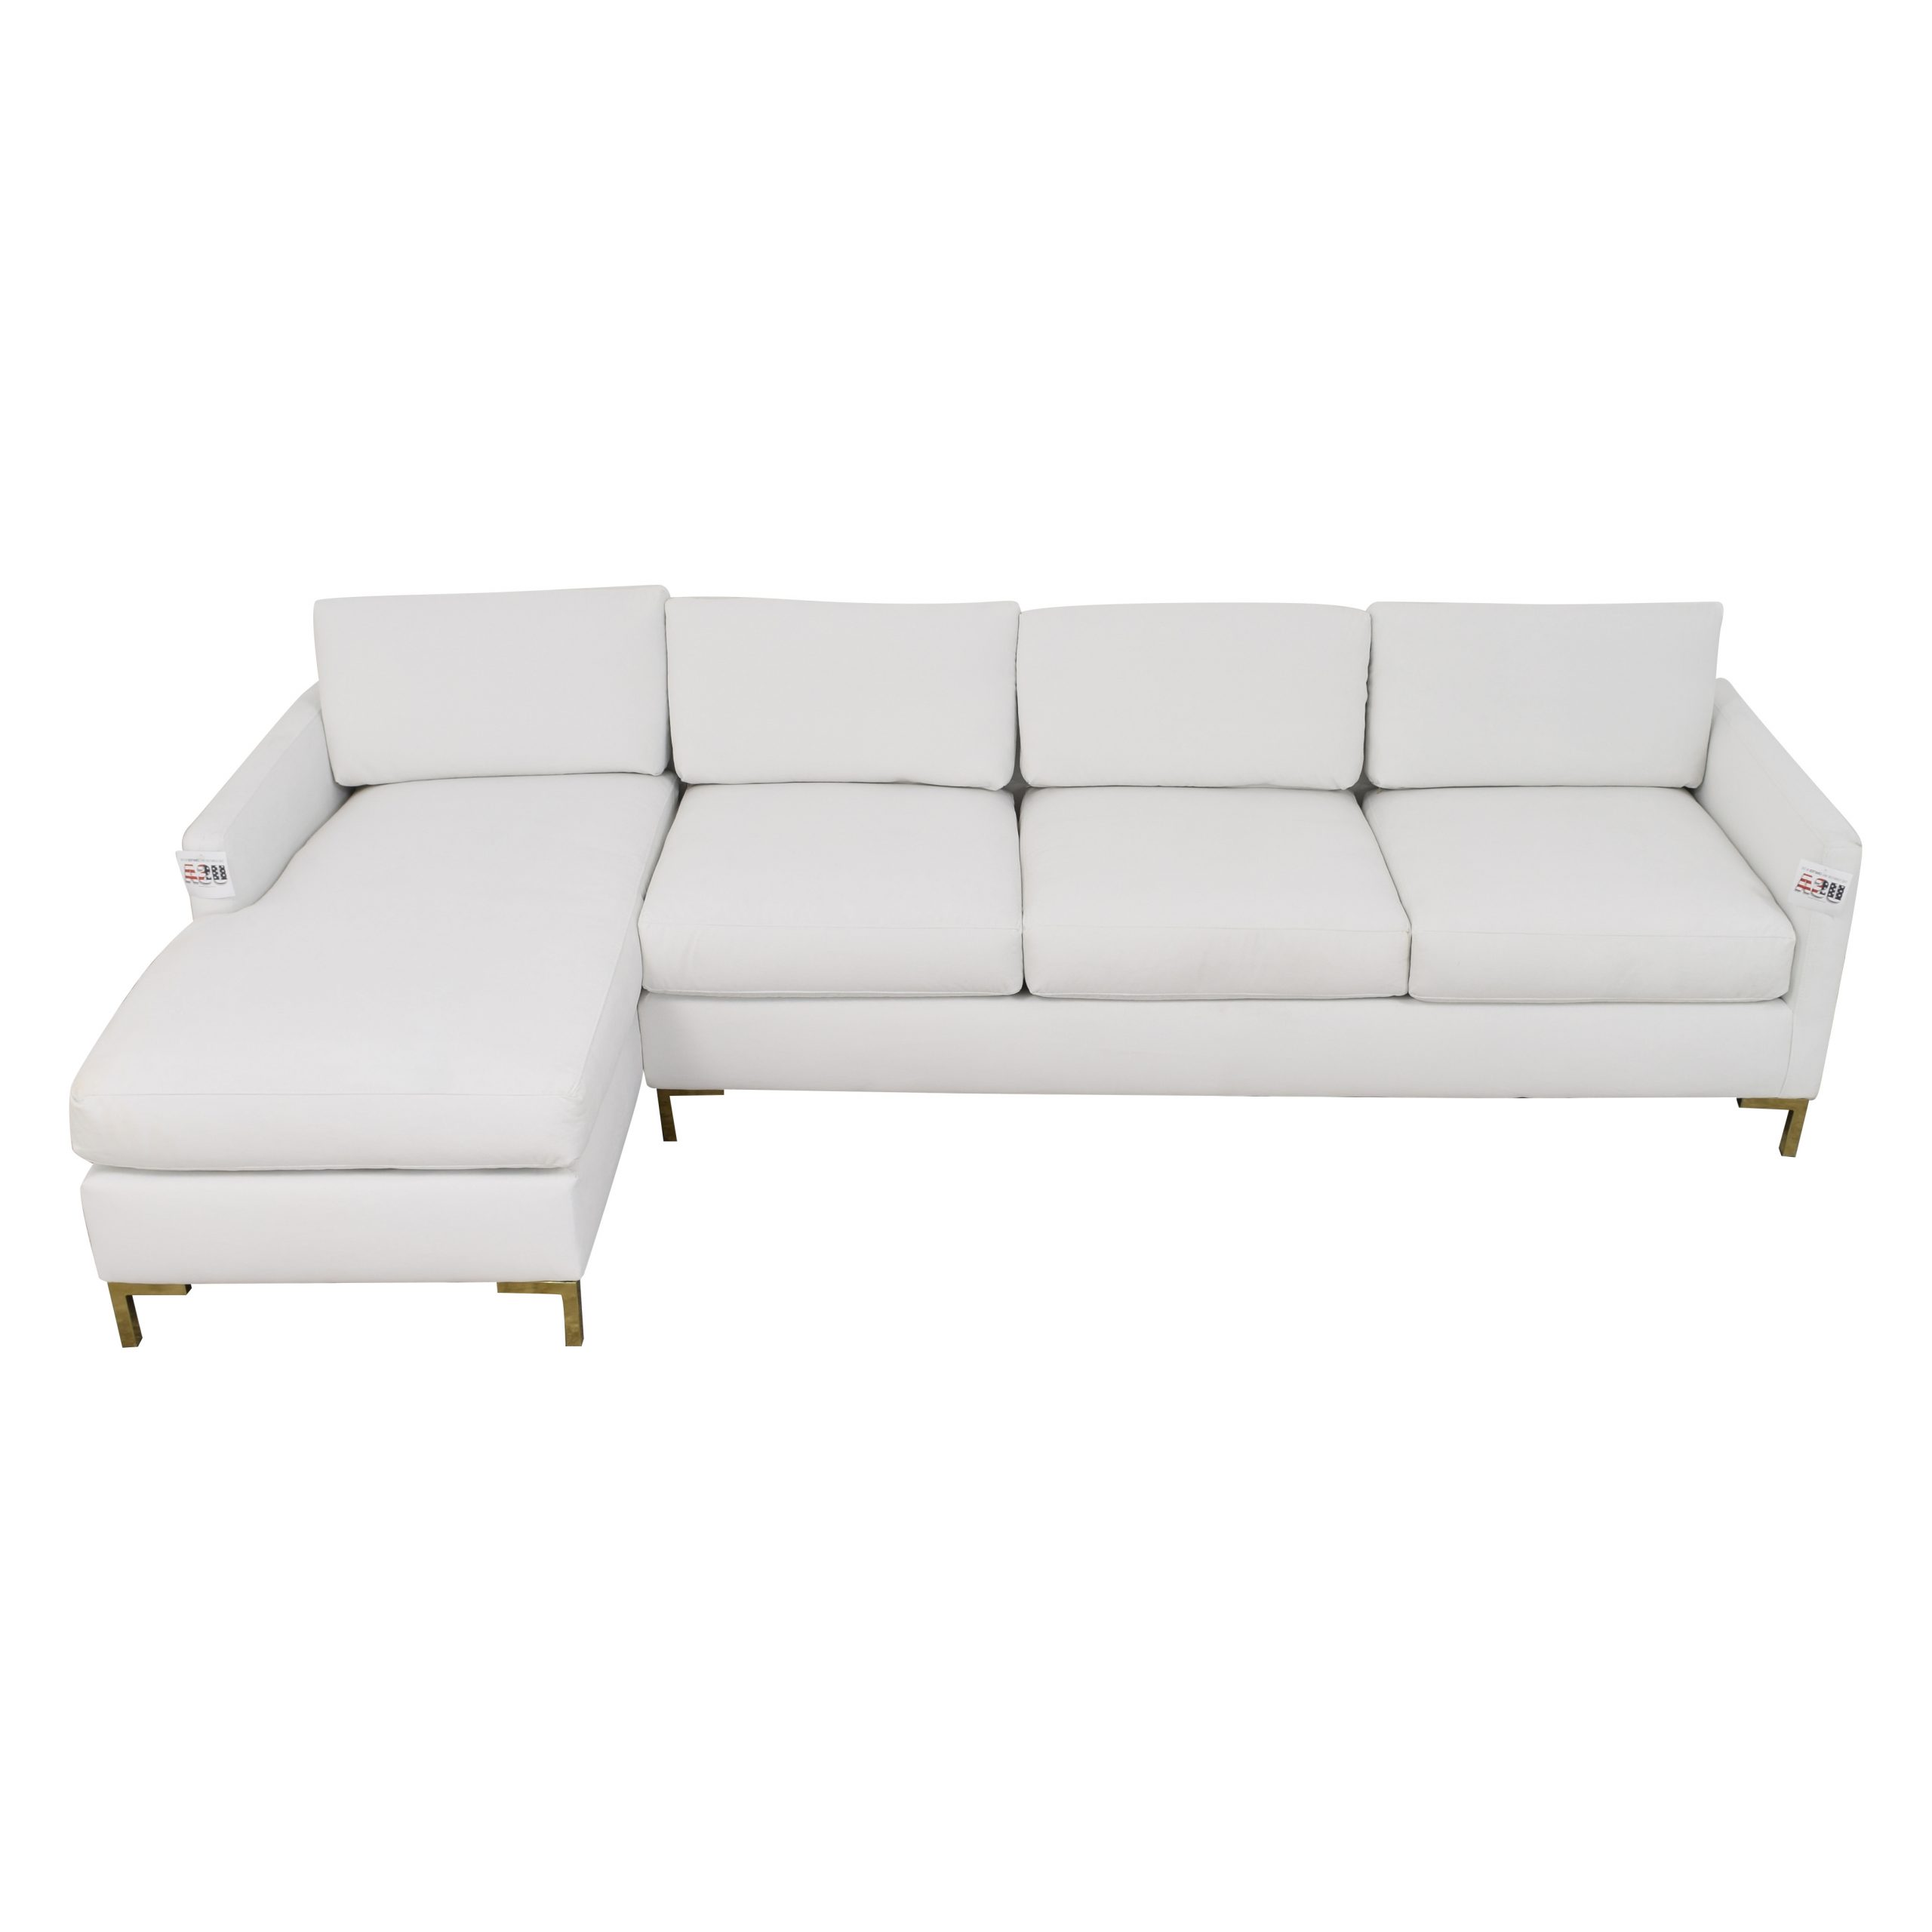 [%37% Off – The Inside The Inside Modern Sectional Right Intended For Newest Kiefer Right Facing Sectional Sofas kiefer Right Facing Sectional Sofas Inside Preferred 37% Off – The Inside The Inside Modern Sectional Right trendy Kiefer Right Facing Sectional Sofas With Regard To 37% Off – The Inside The Inside Modern Sectional Right well Liked 37% Off – The Inside The Inside Modern Sectional Right Inside Kiefer Right Facing Sectional Sofas%] (View 8 of 20)